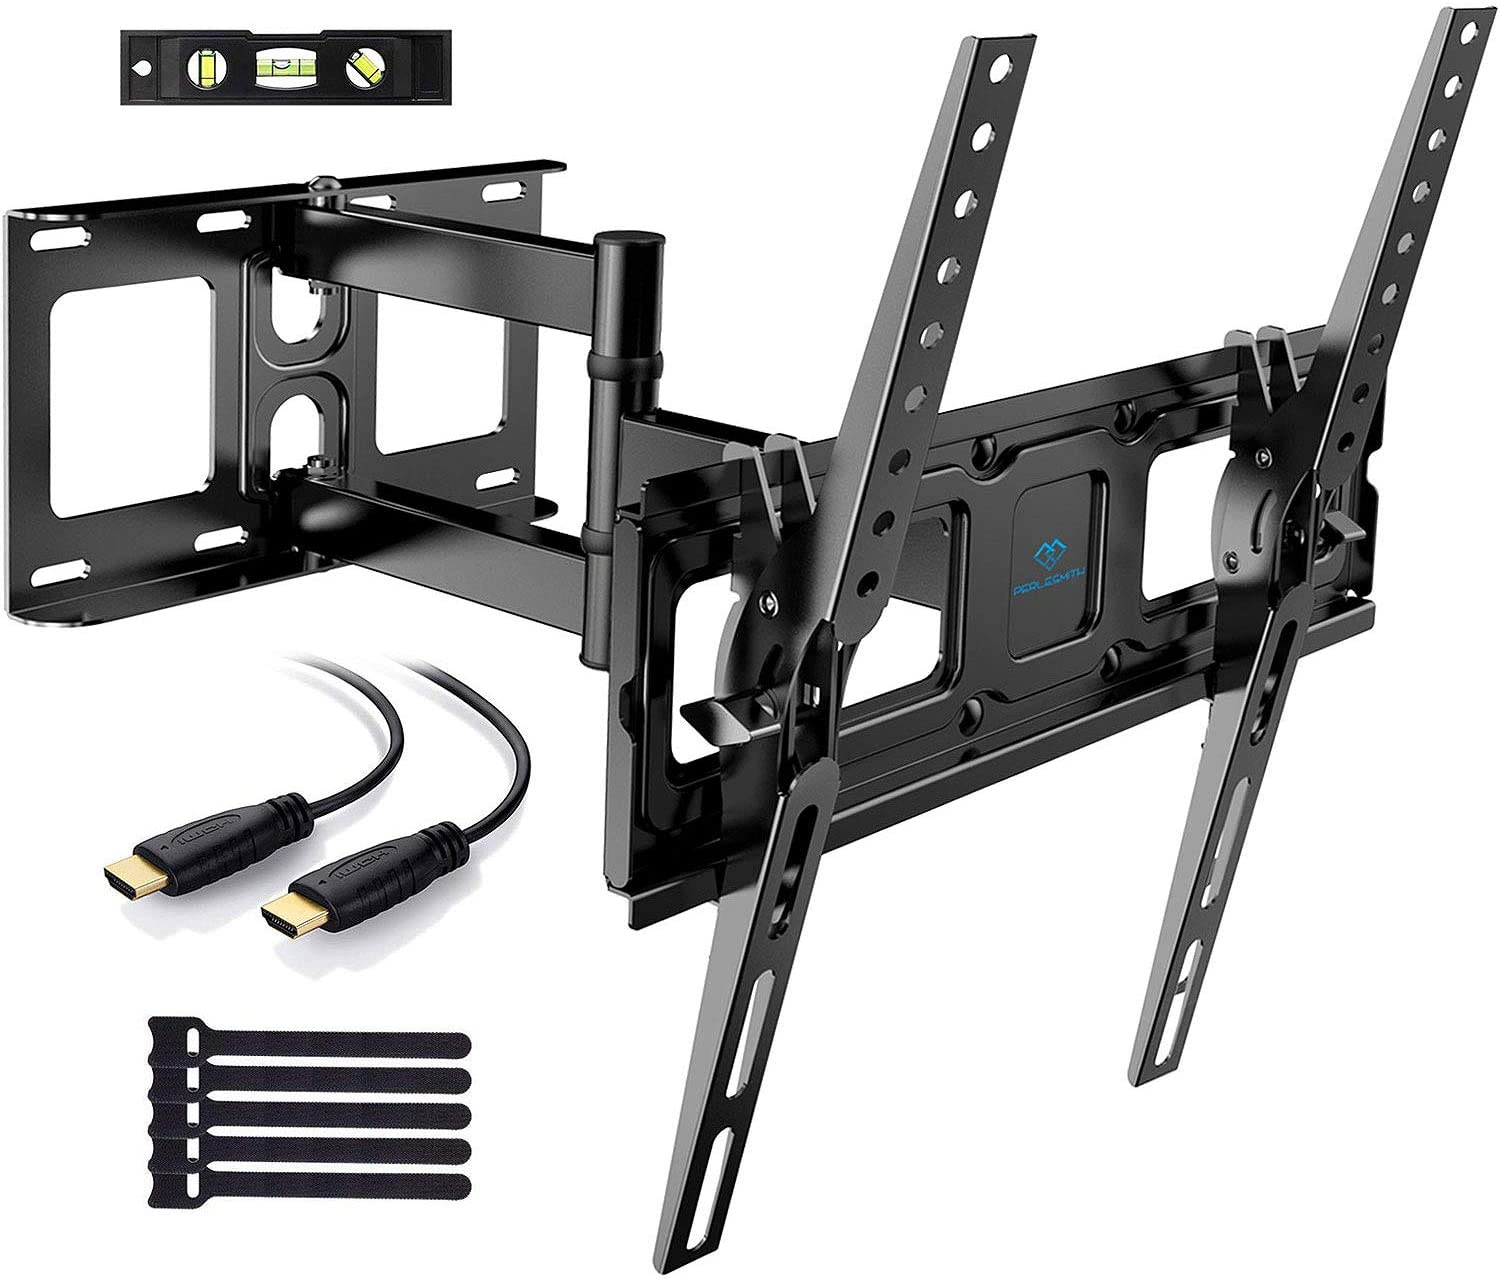 "Soporte de TV Pared Articulado Inclinable Y Giratorio – Soporte De TV para Pantallas De 26-55"" TV – MAX VESA 400x400mm, para Soportar 40 kg, Cable HDMI Y Nivel De Burbuja Incluidos"